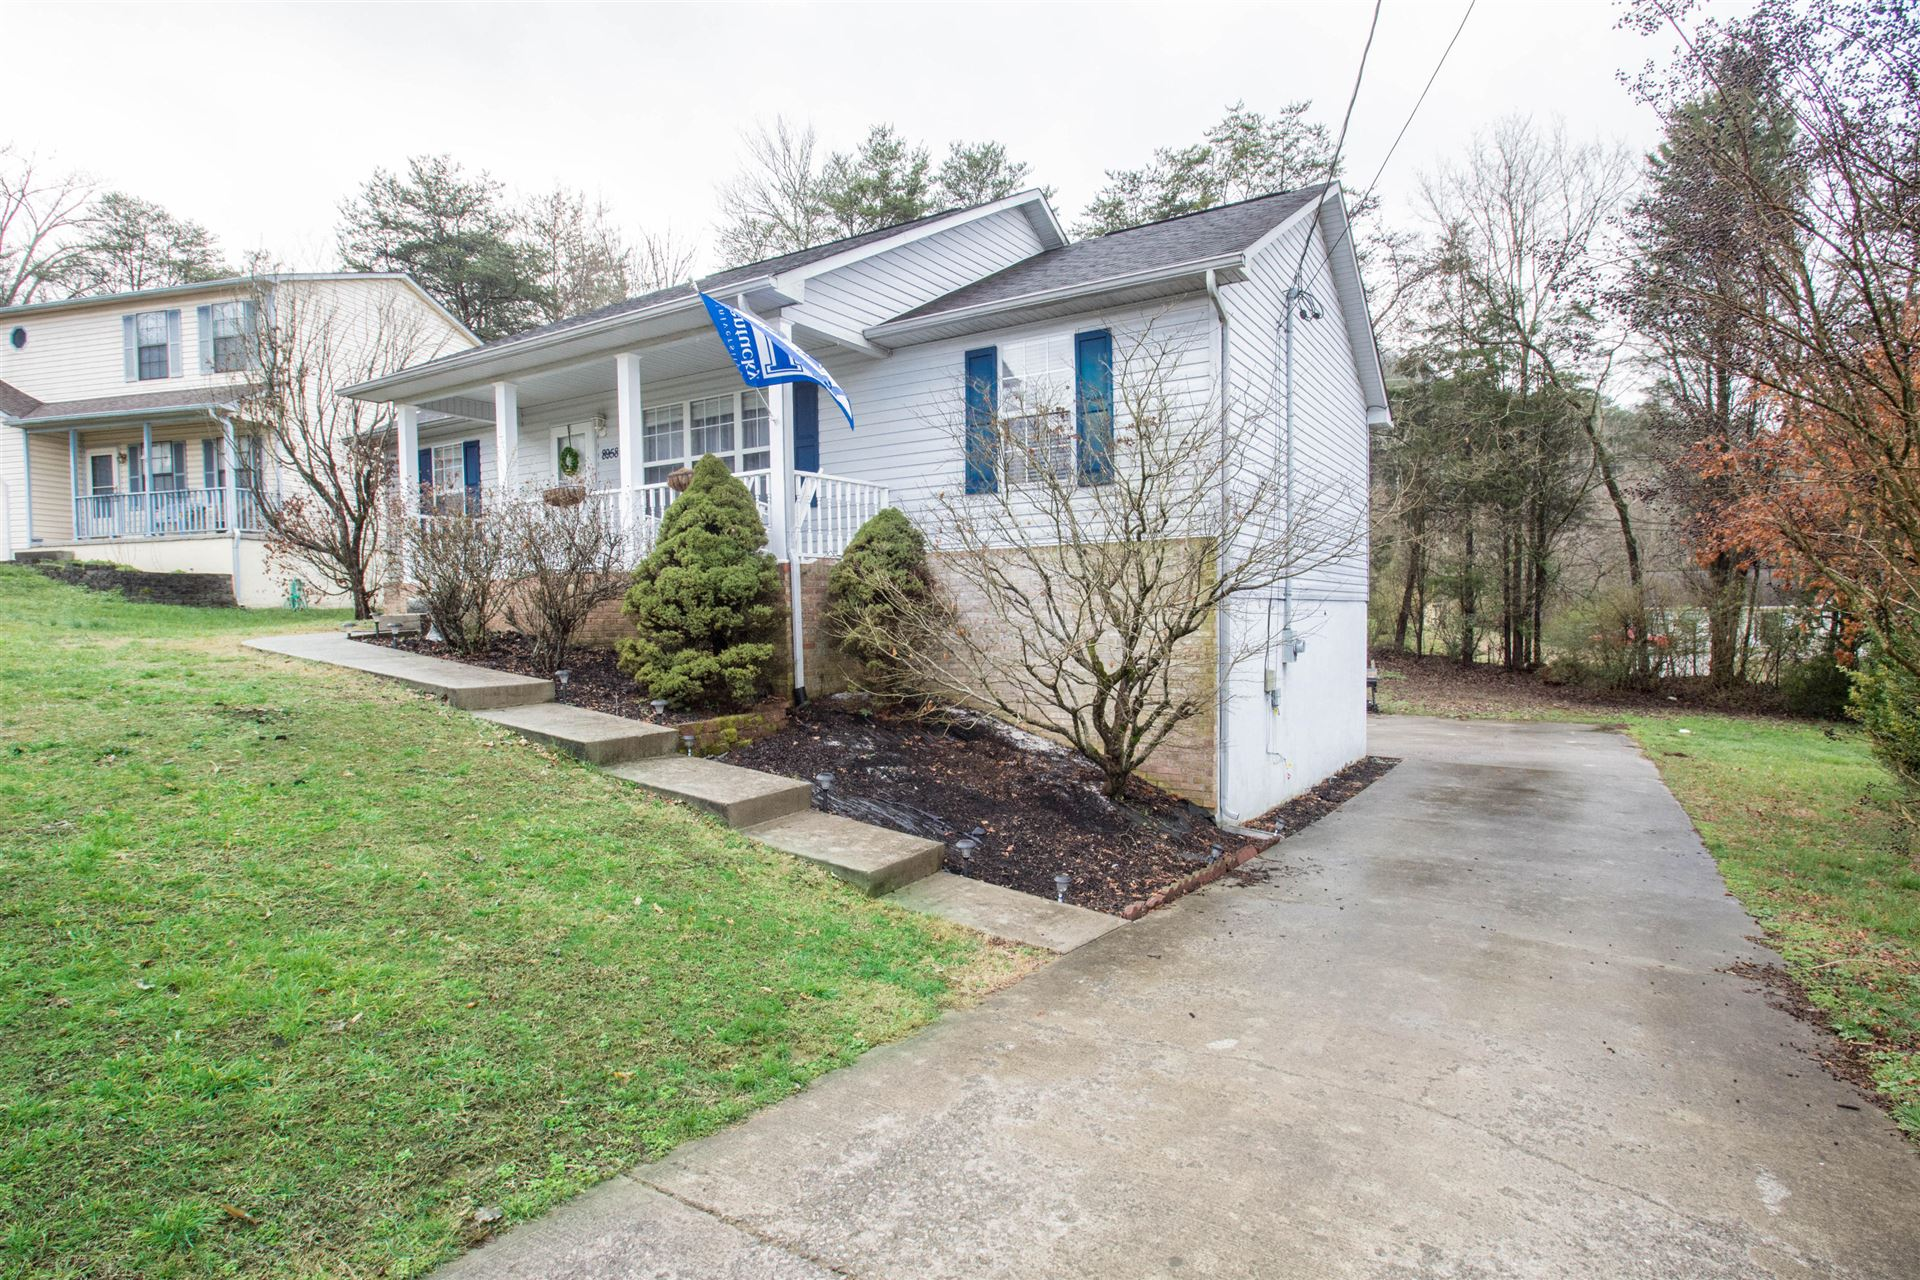 Photo of 8958 Heathercrest Drive, Powell, TN 37849 (MLS # 1108294)